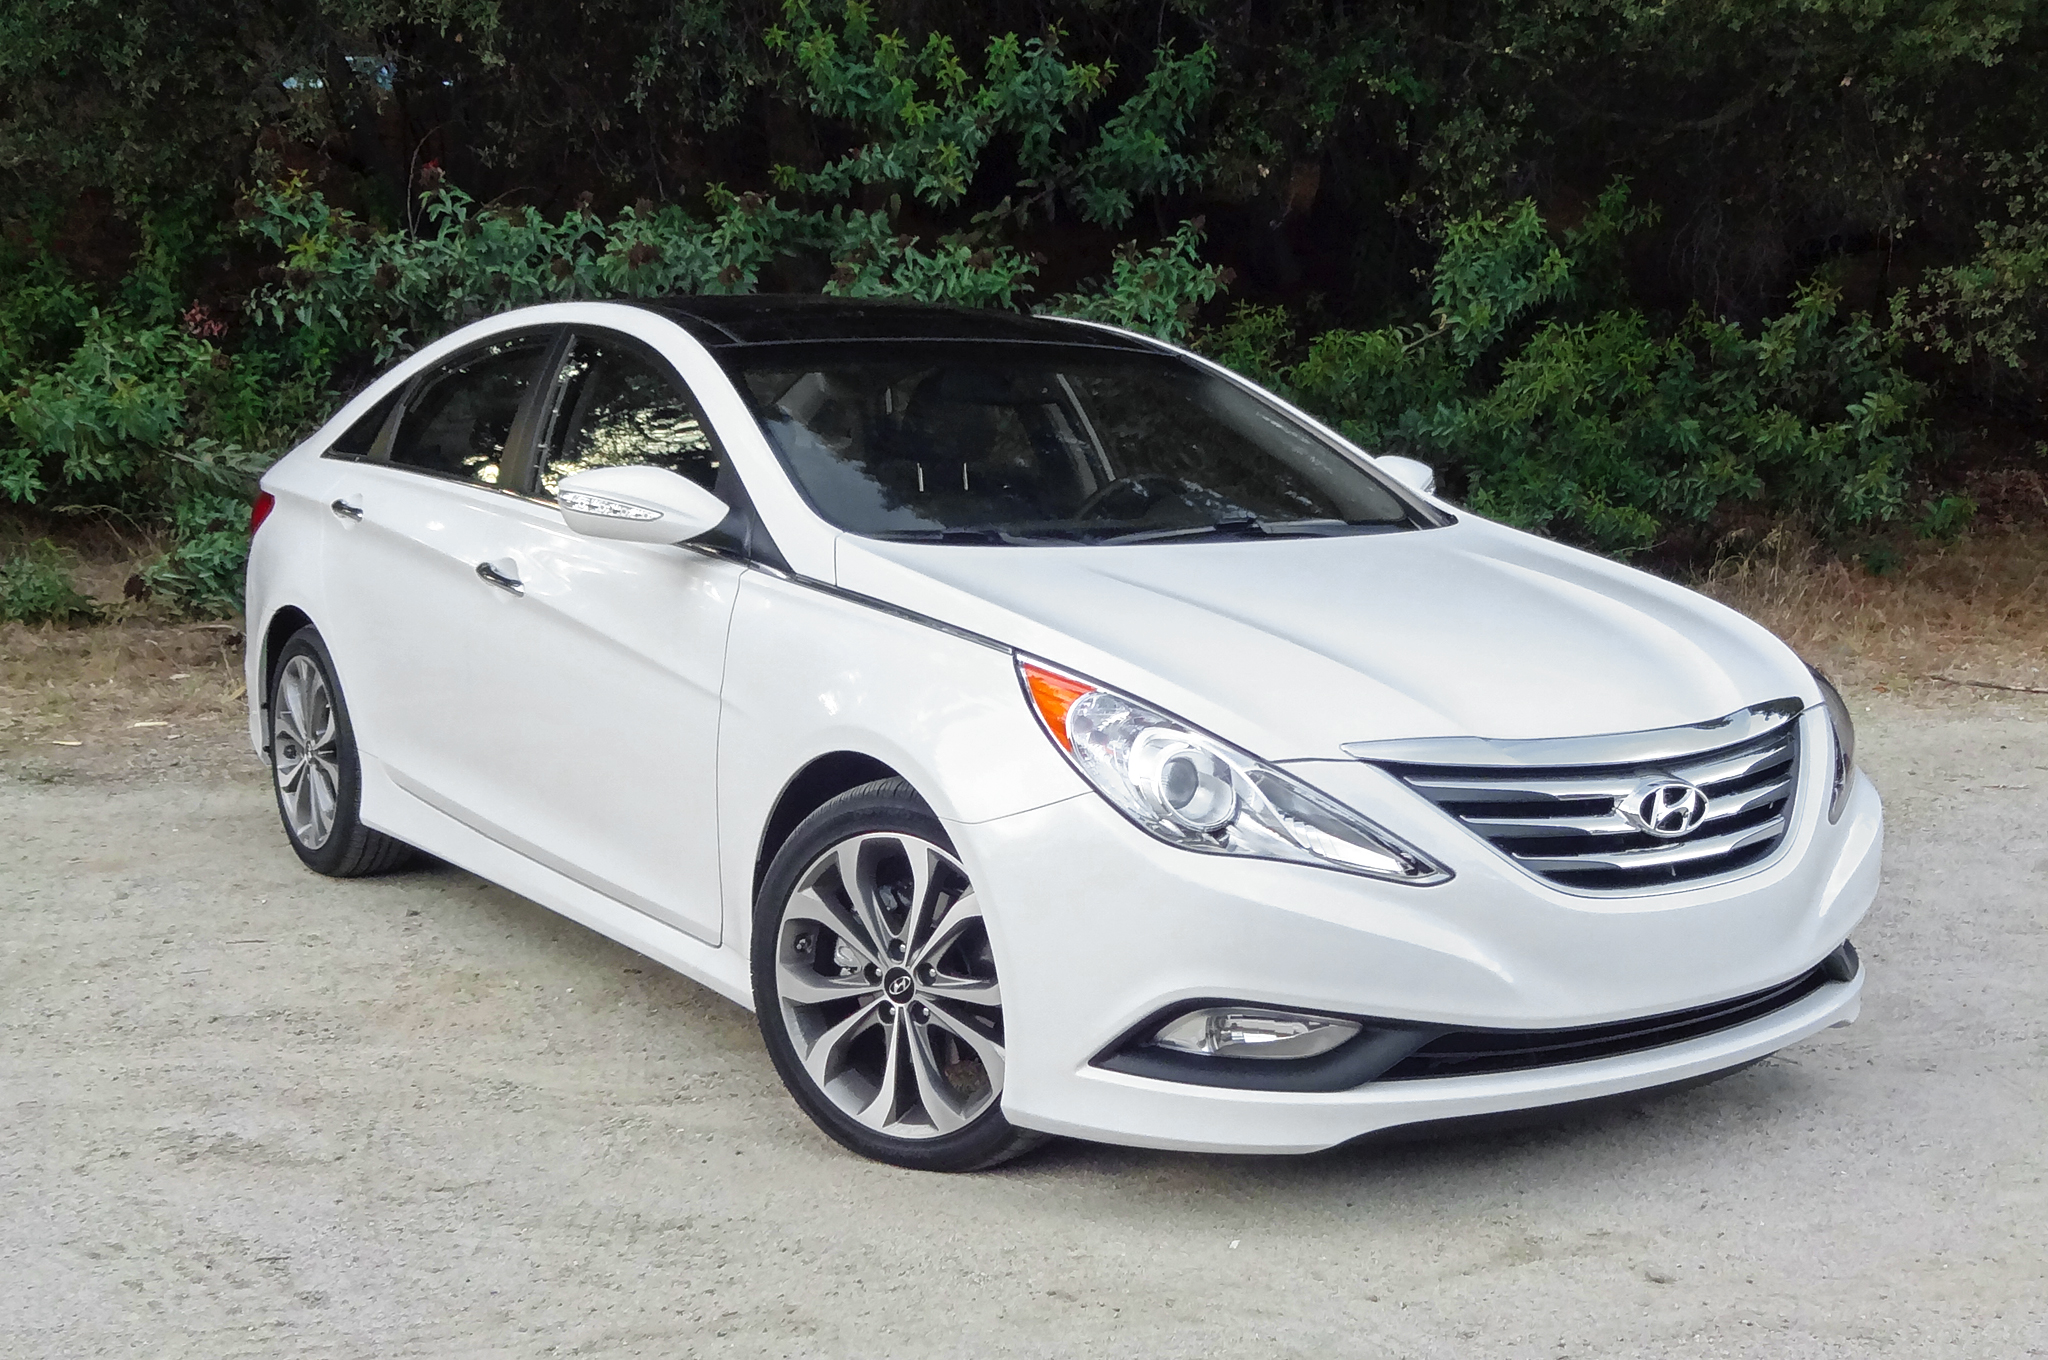 hyundai id contact kms ontario genesis occasion fr d coupe concord with vehicle car direct stock deals used